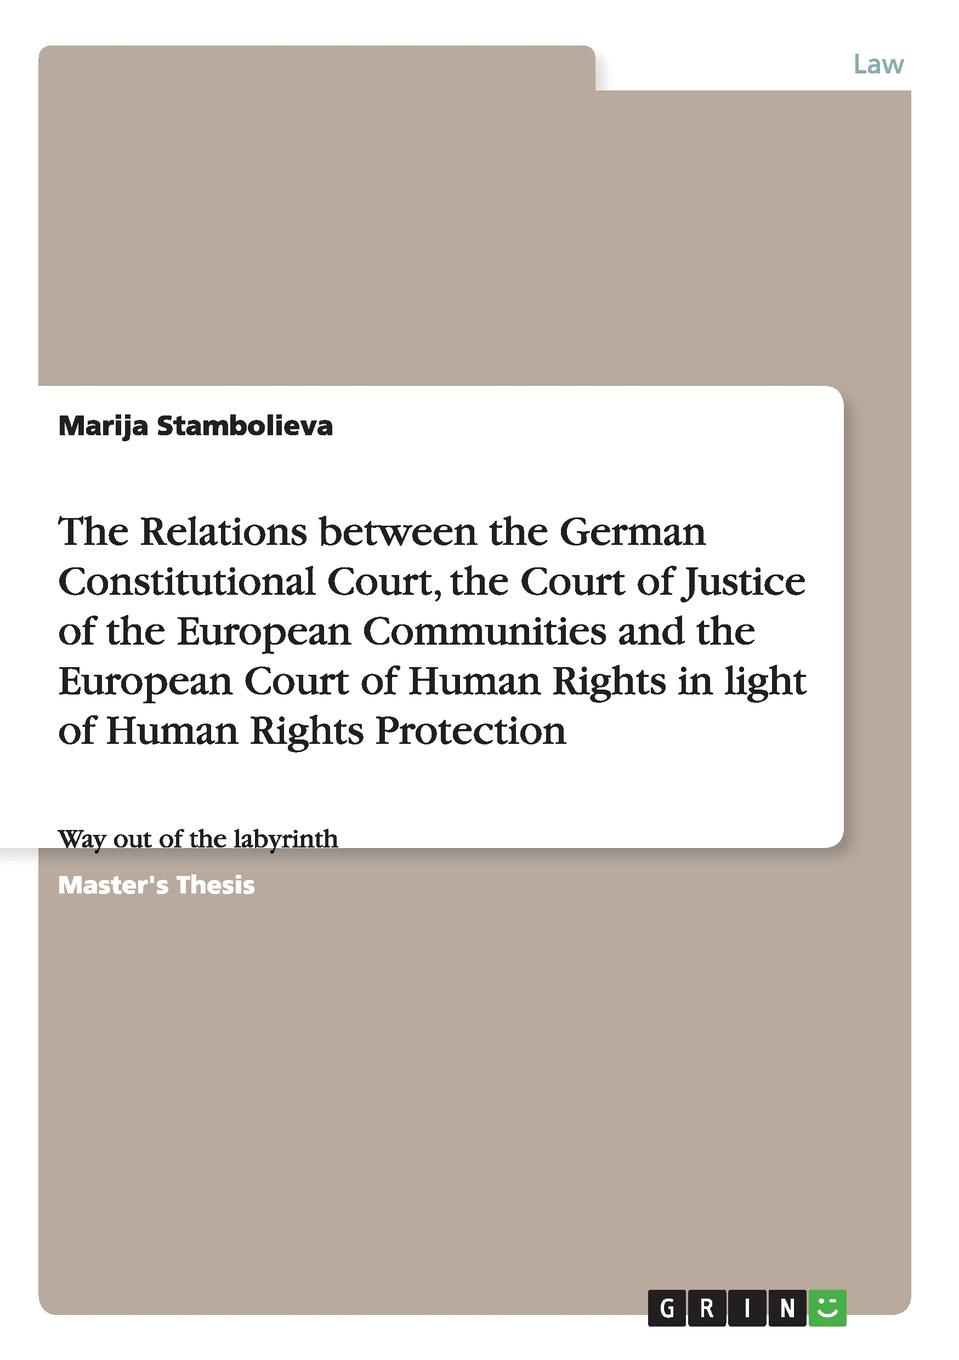 Marija Stambolieva The Relations between the German Constitutional Court, the Court of Justice of the European Communities and the European Court of Human Rights in light of Human Rights Protection the making of labour law in europe